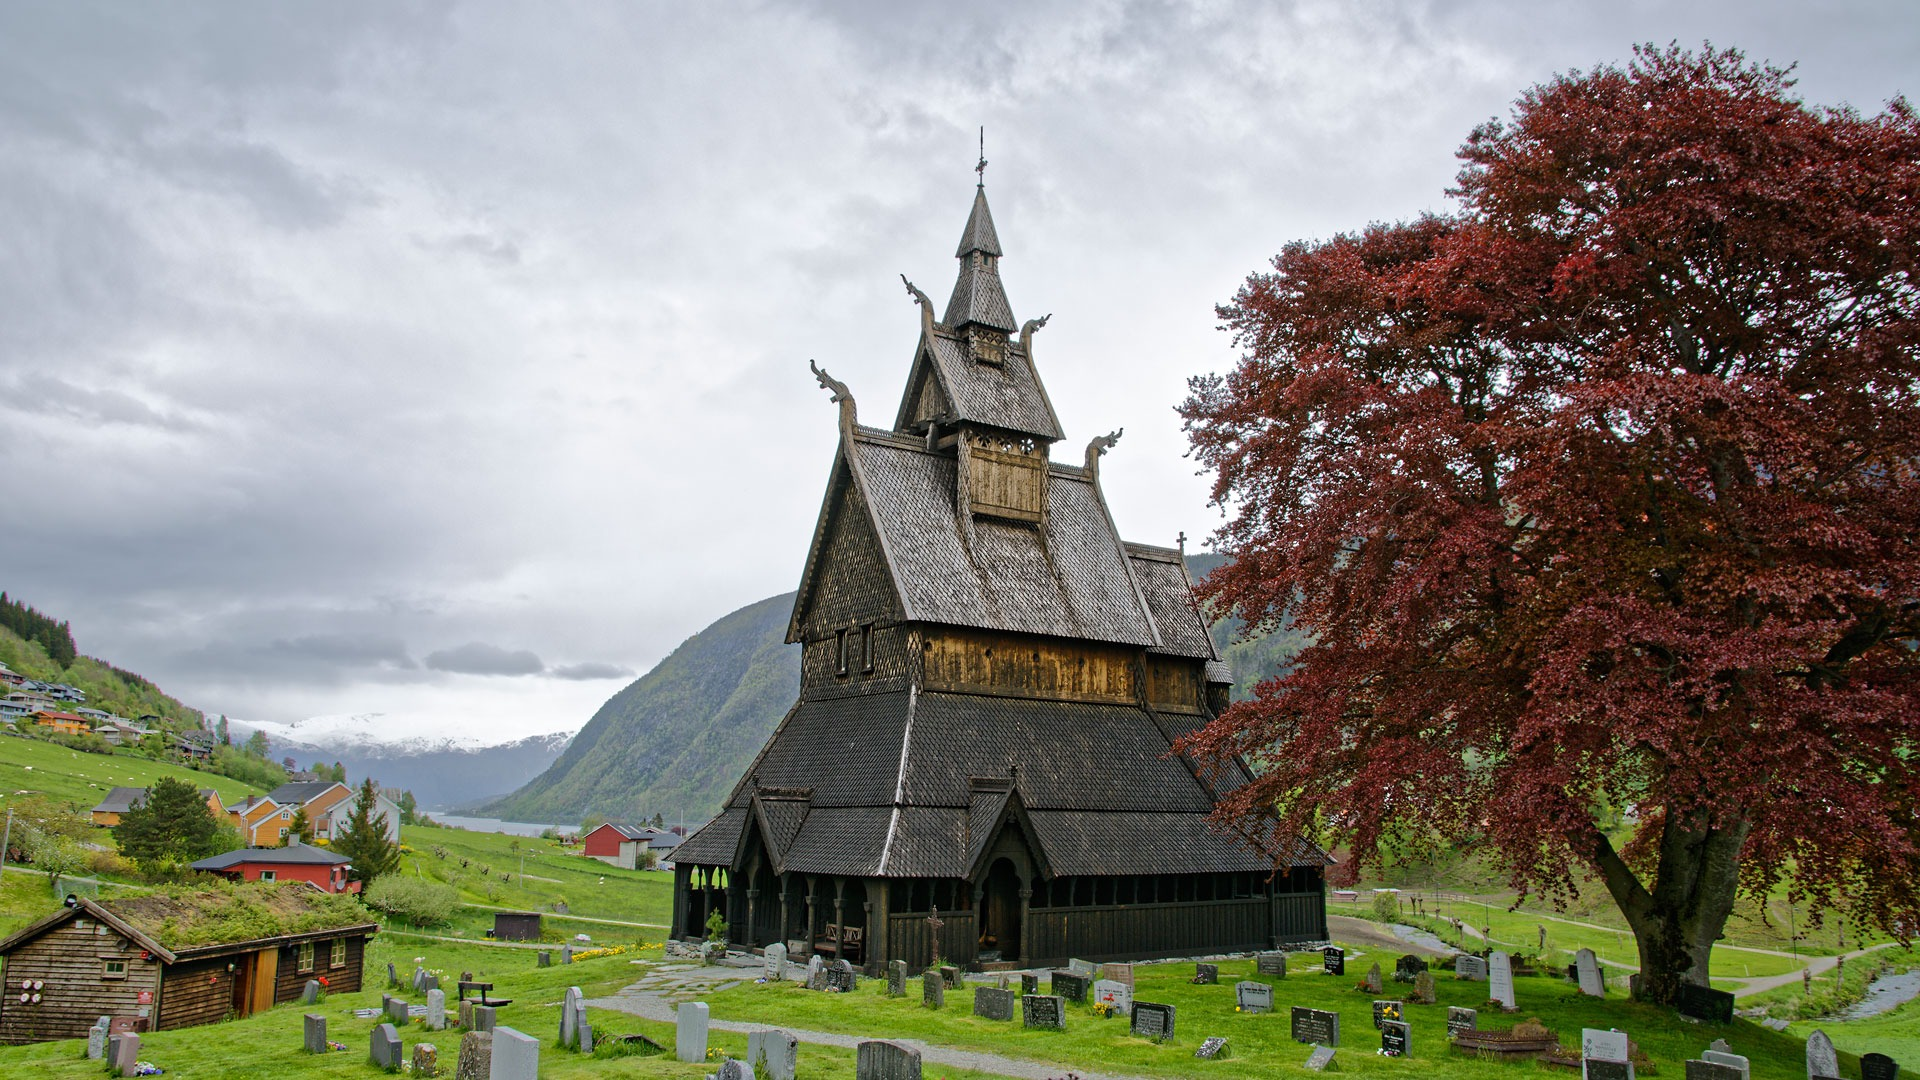 Hopperstad stave church after the renovation through the Conservation programme for stave churches. Photo: Dagfinn Rasmussen, the Directorate of Cultural Heritage